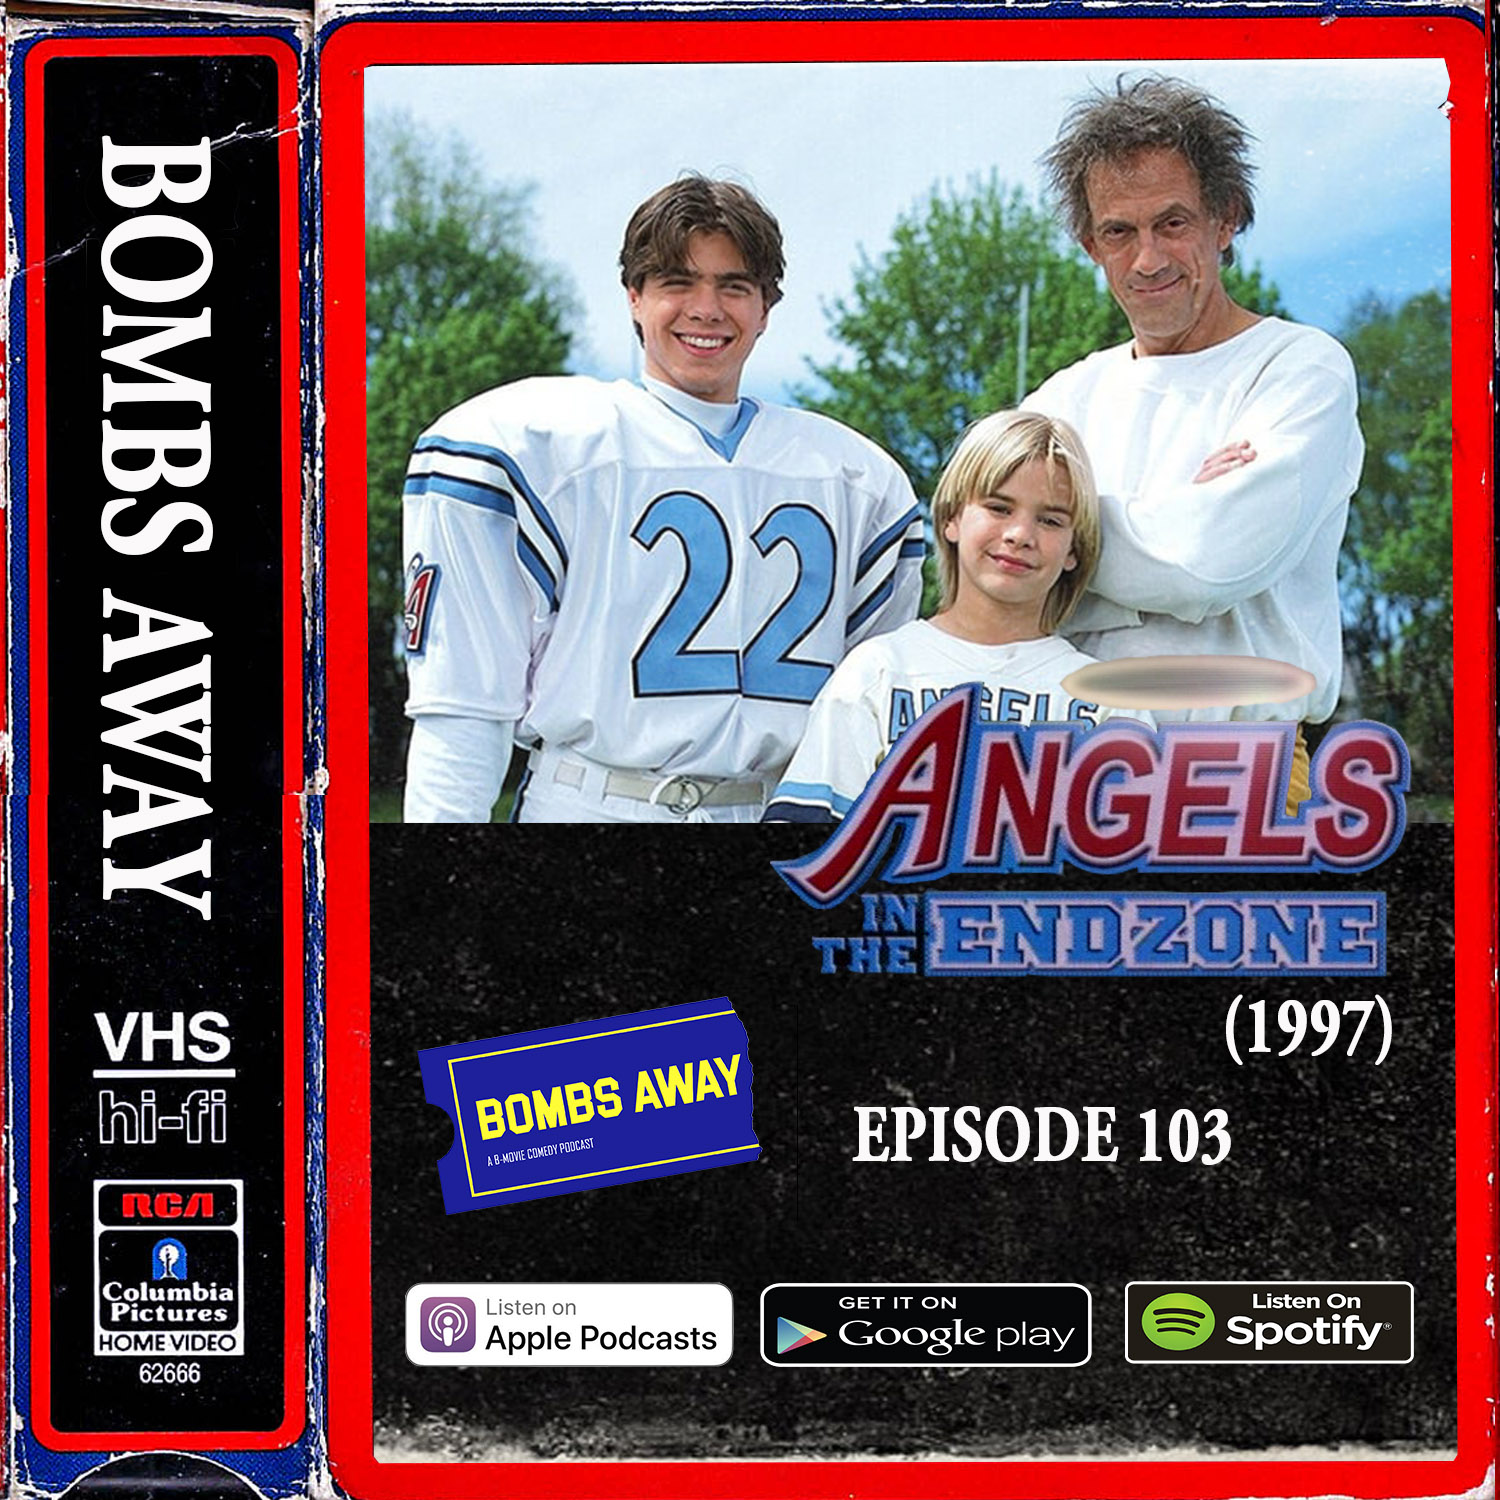 Episode 103 - Angels in the Endzone (1997)